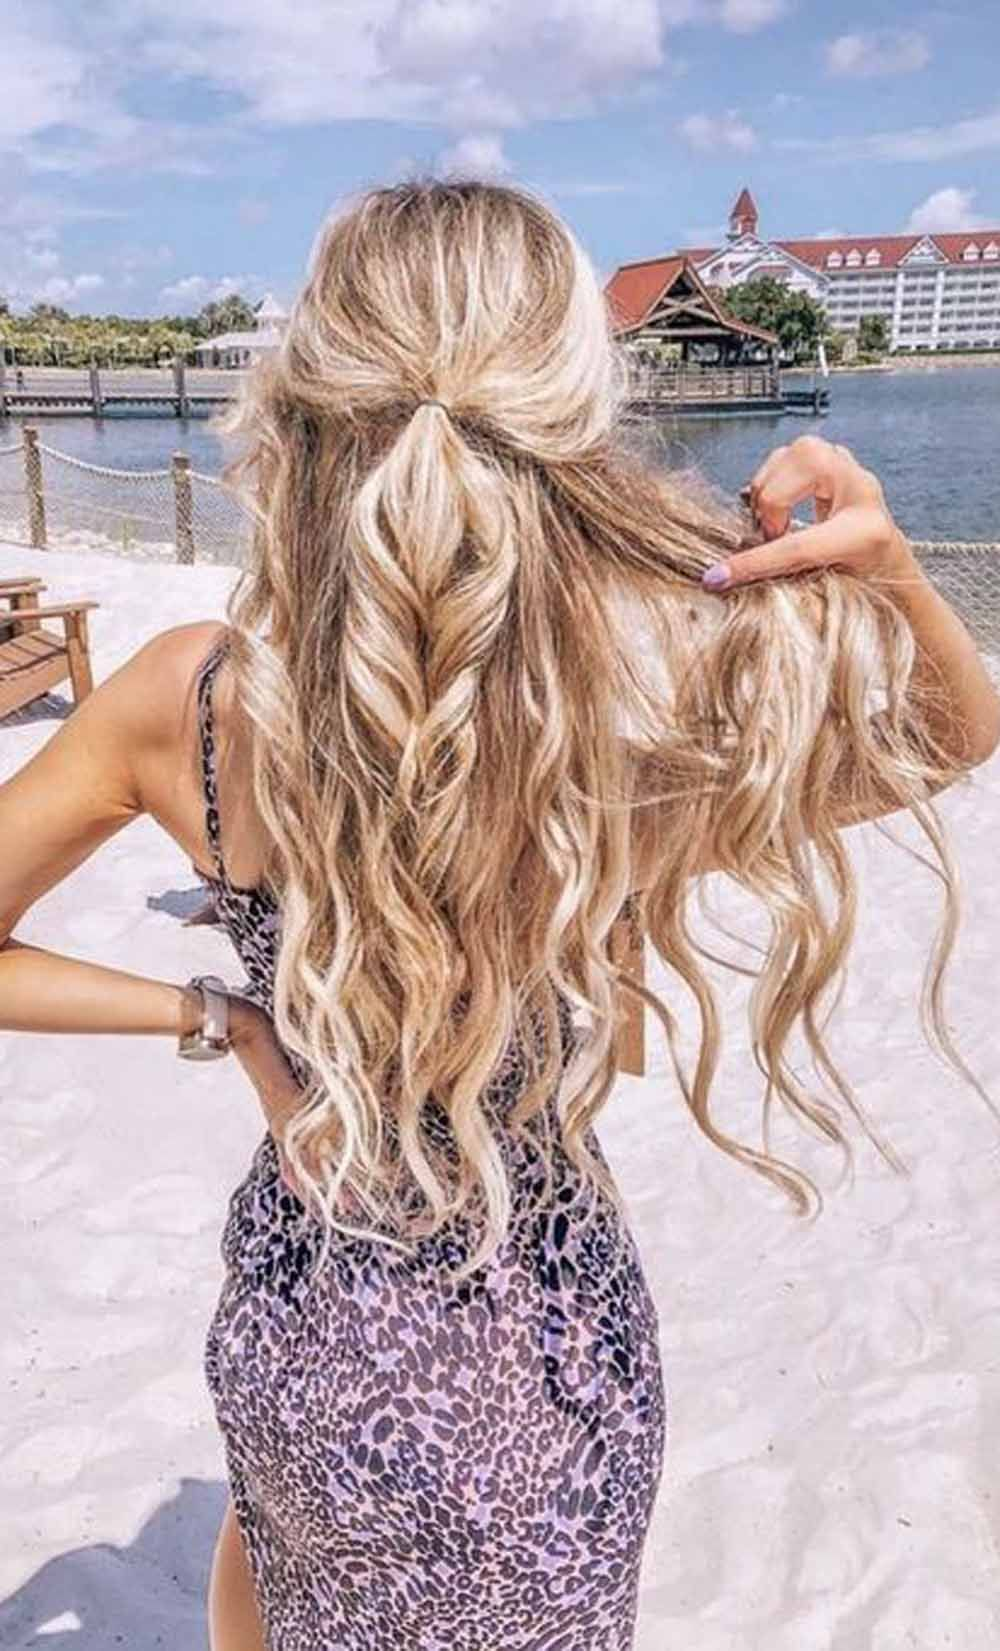 7 Copybook Prom Hairstyles For Your Longer Hair: View Them All